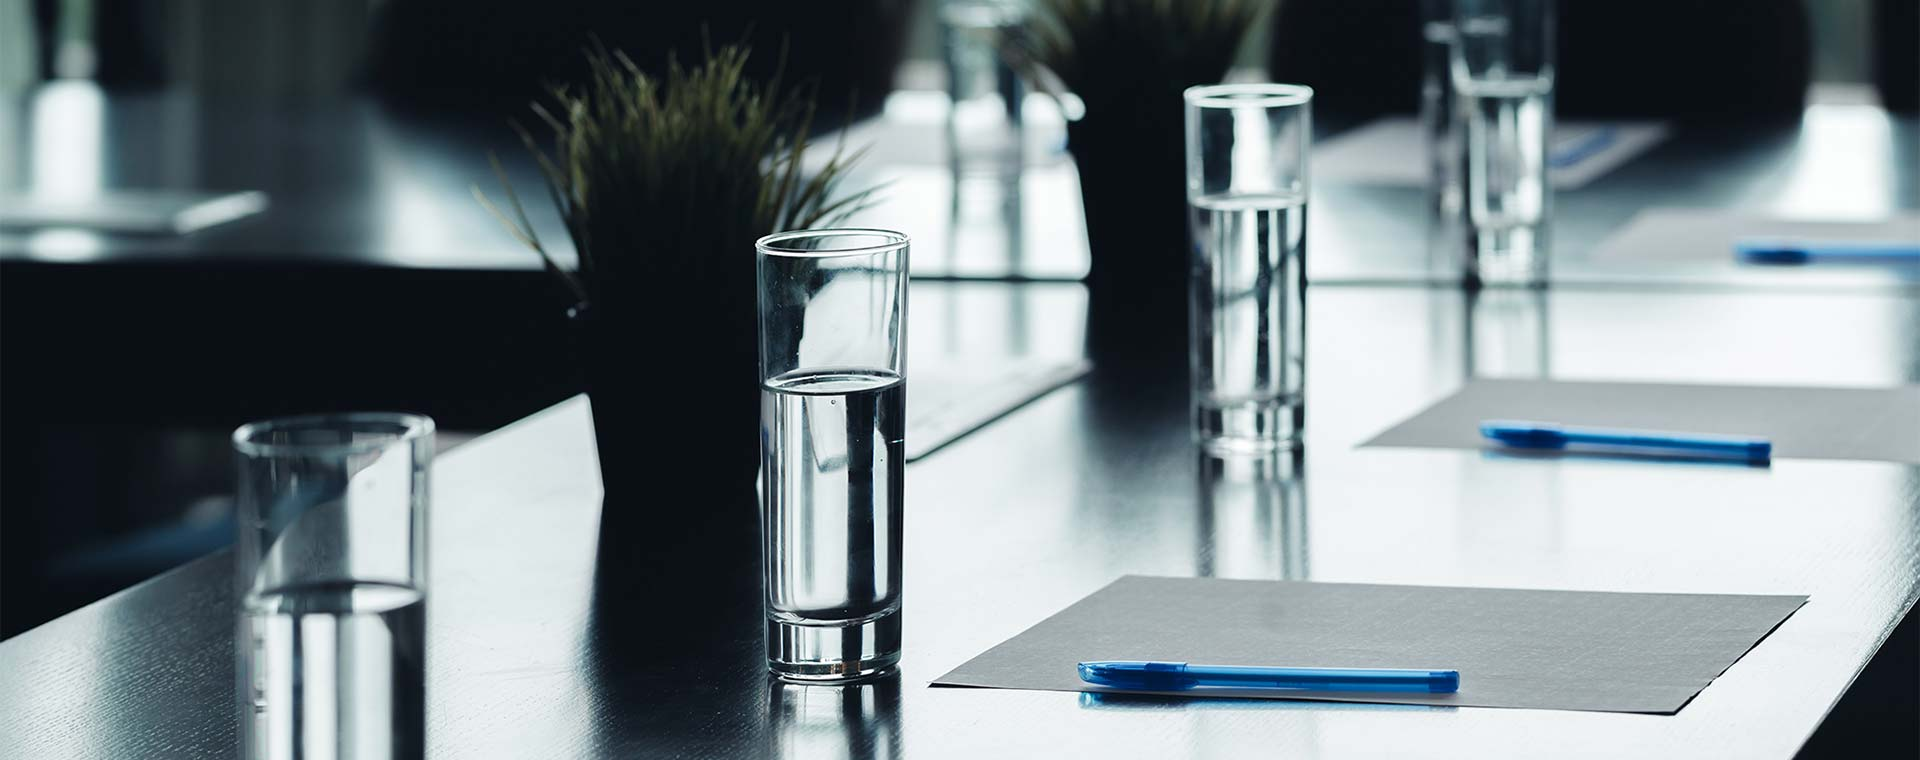 A close up of a conference room light by nature light. On the table are four glasses of water, notepaper, pens and succulent plants.